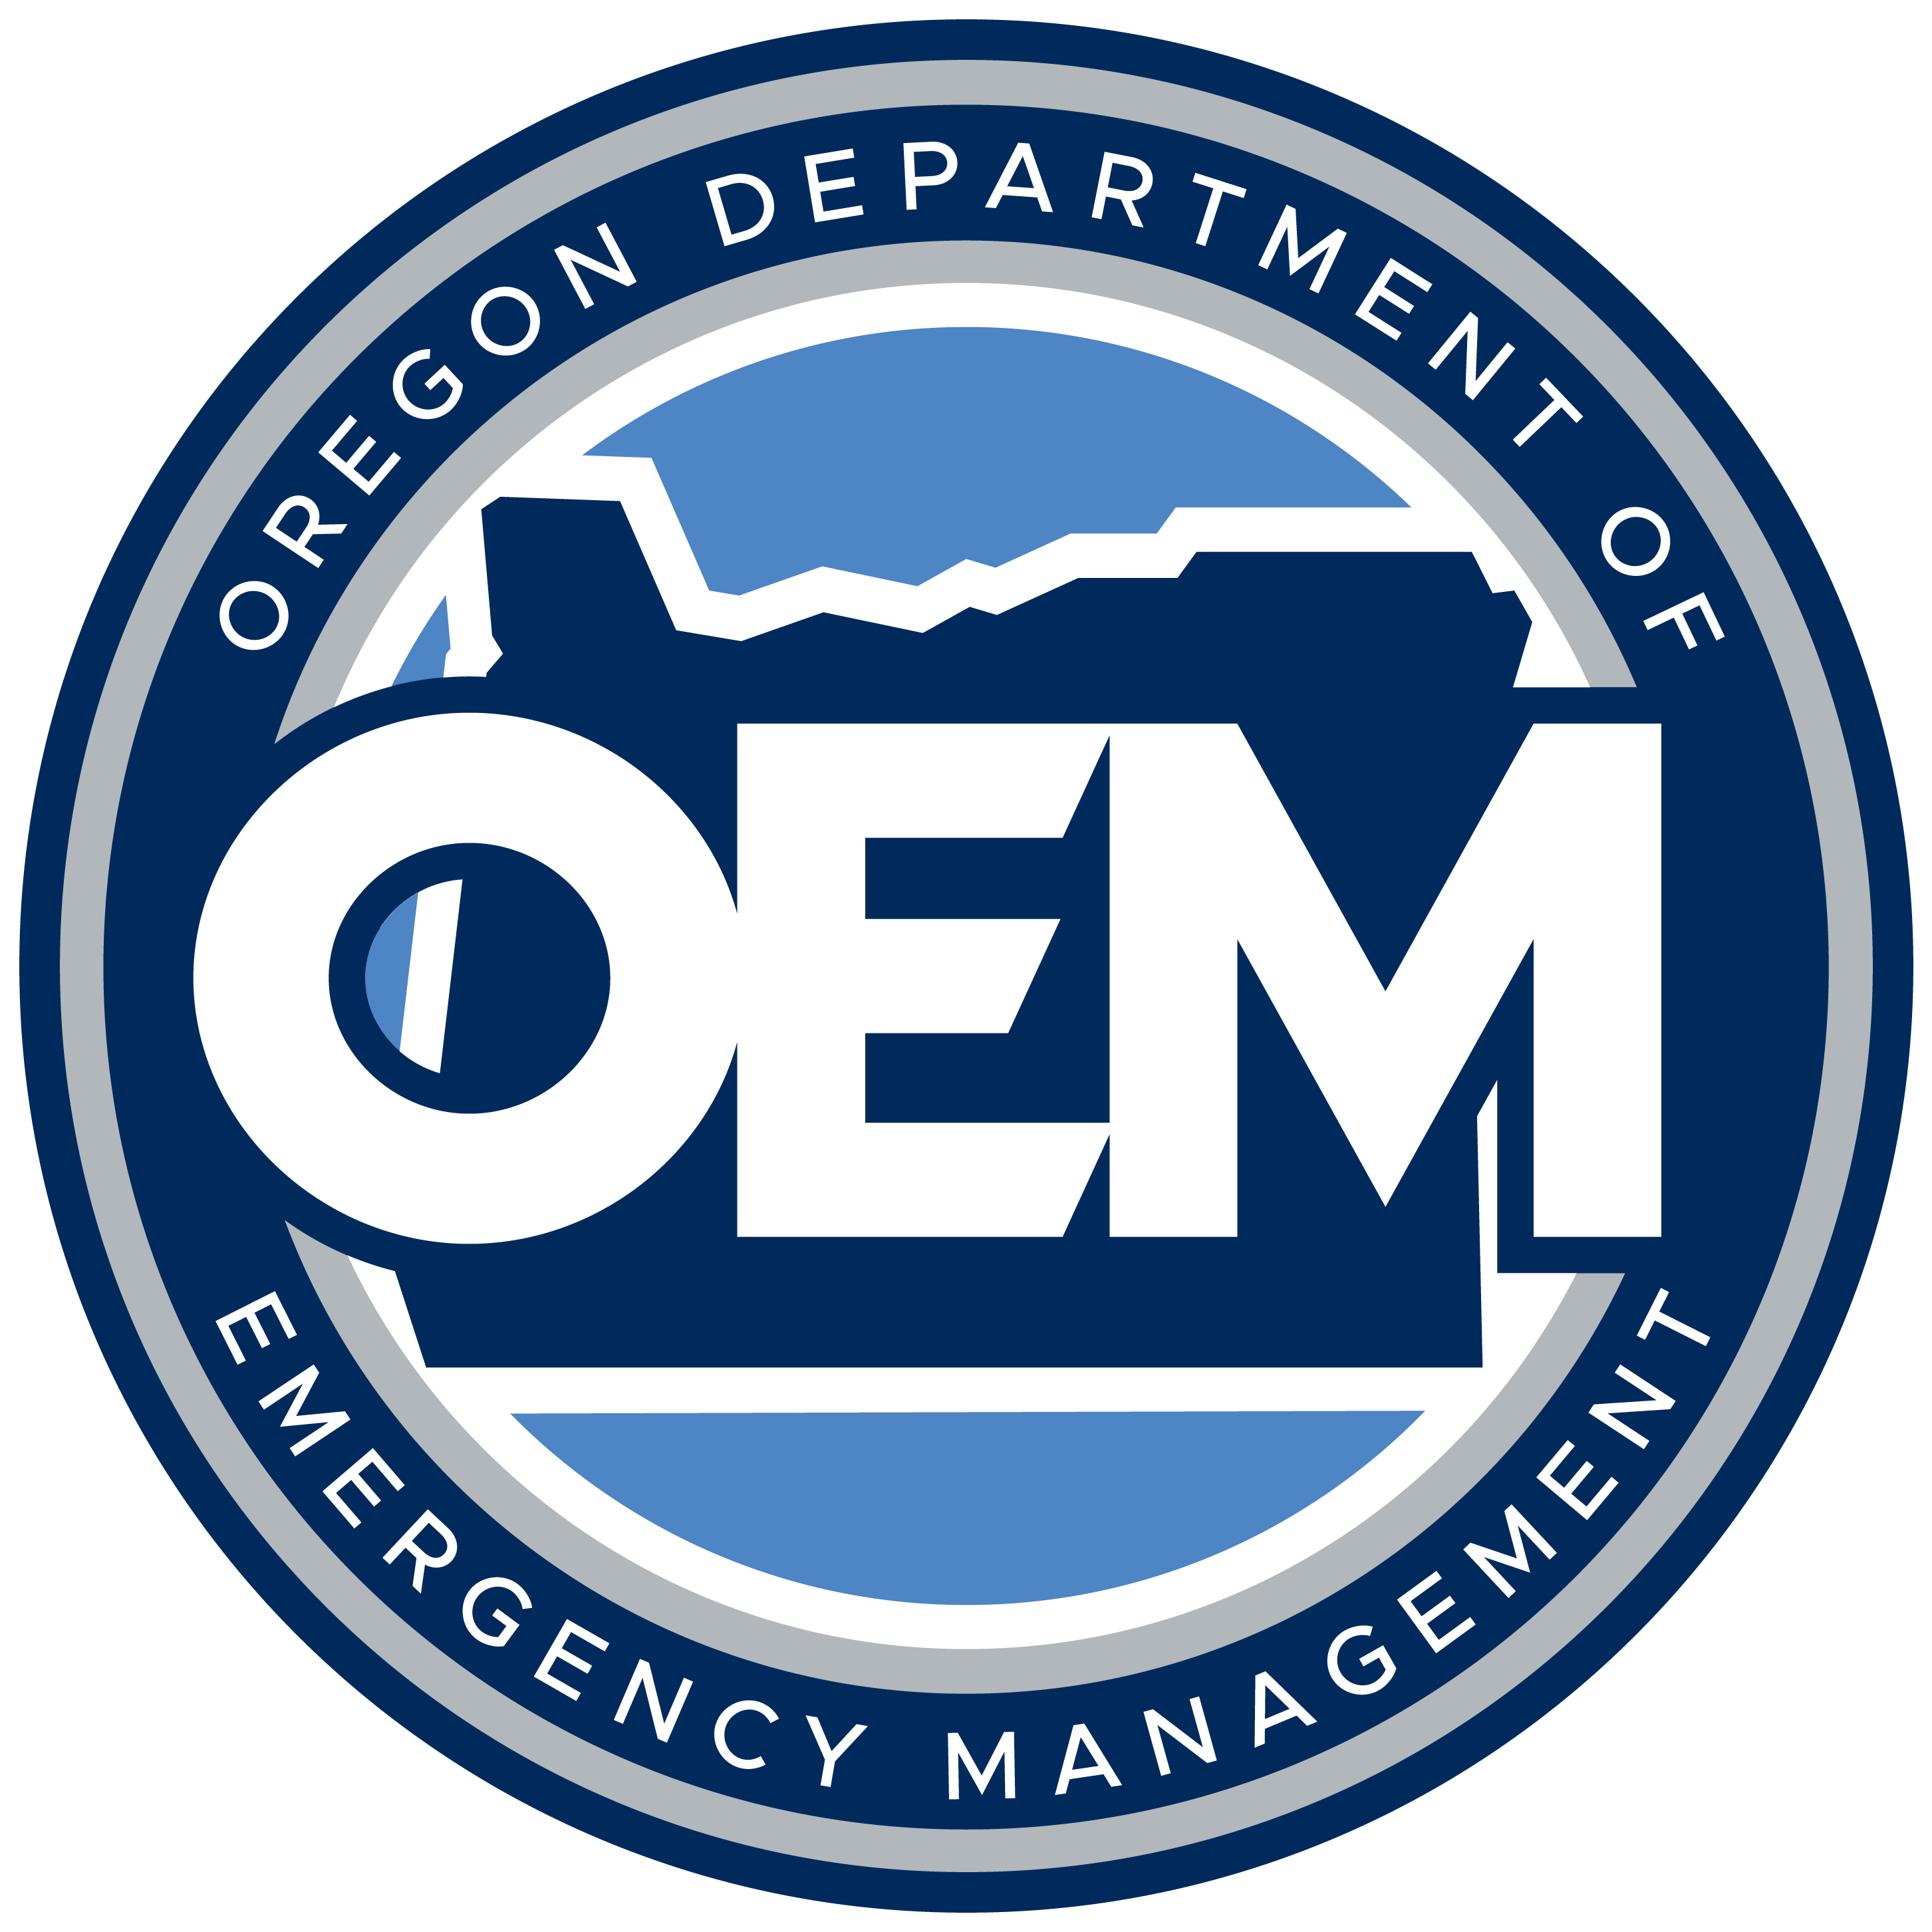 Oregon Emergency Management logo in navy, gold, blackm and white